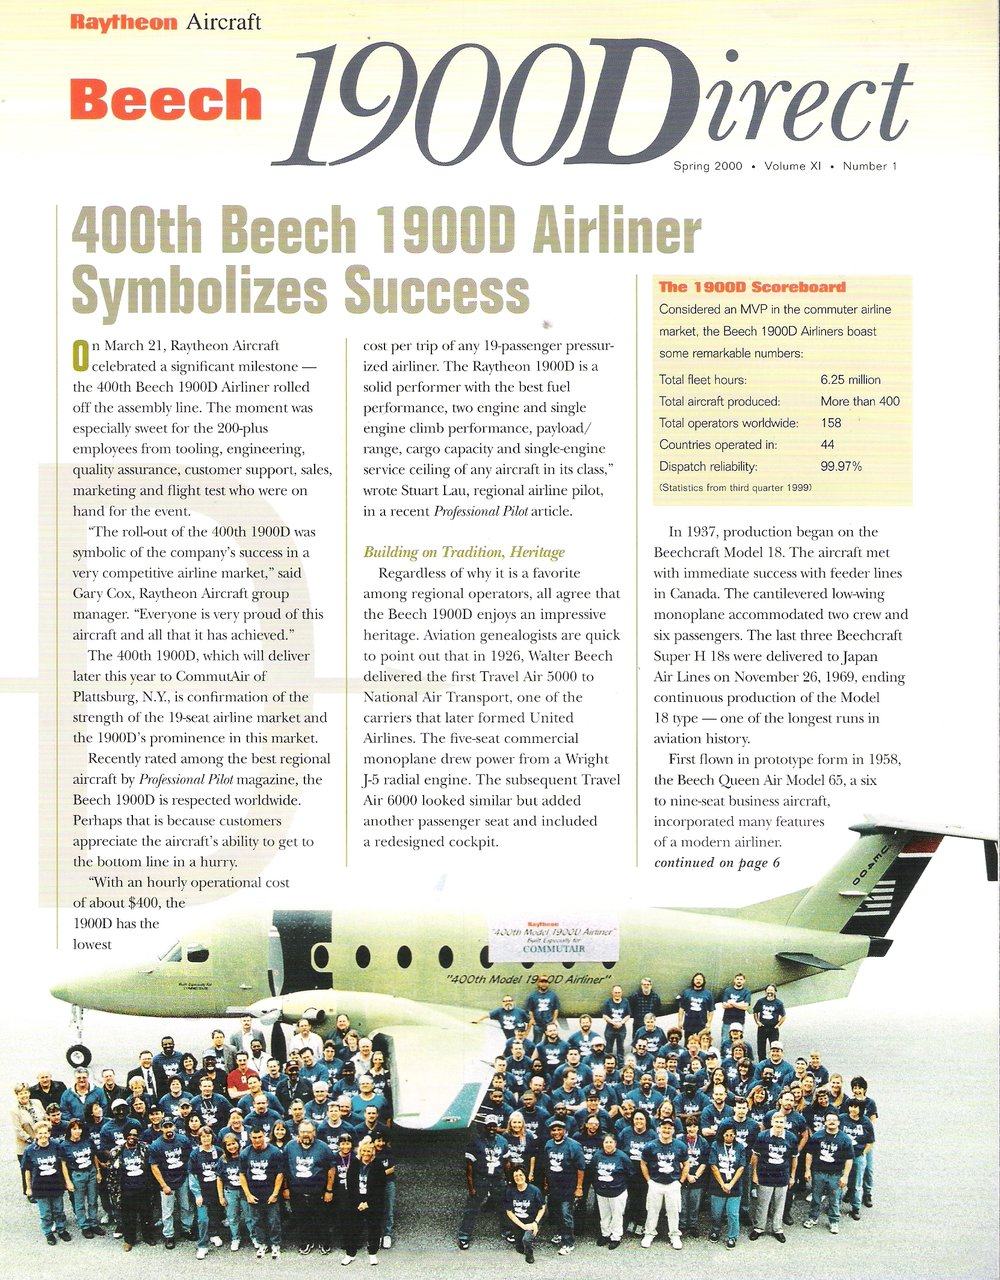 Beech 1900Direct Newsletter - 2000